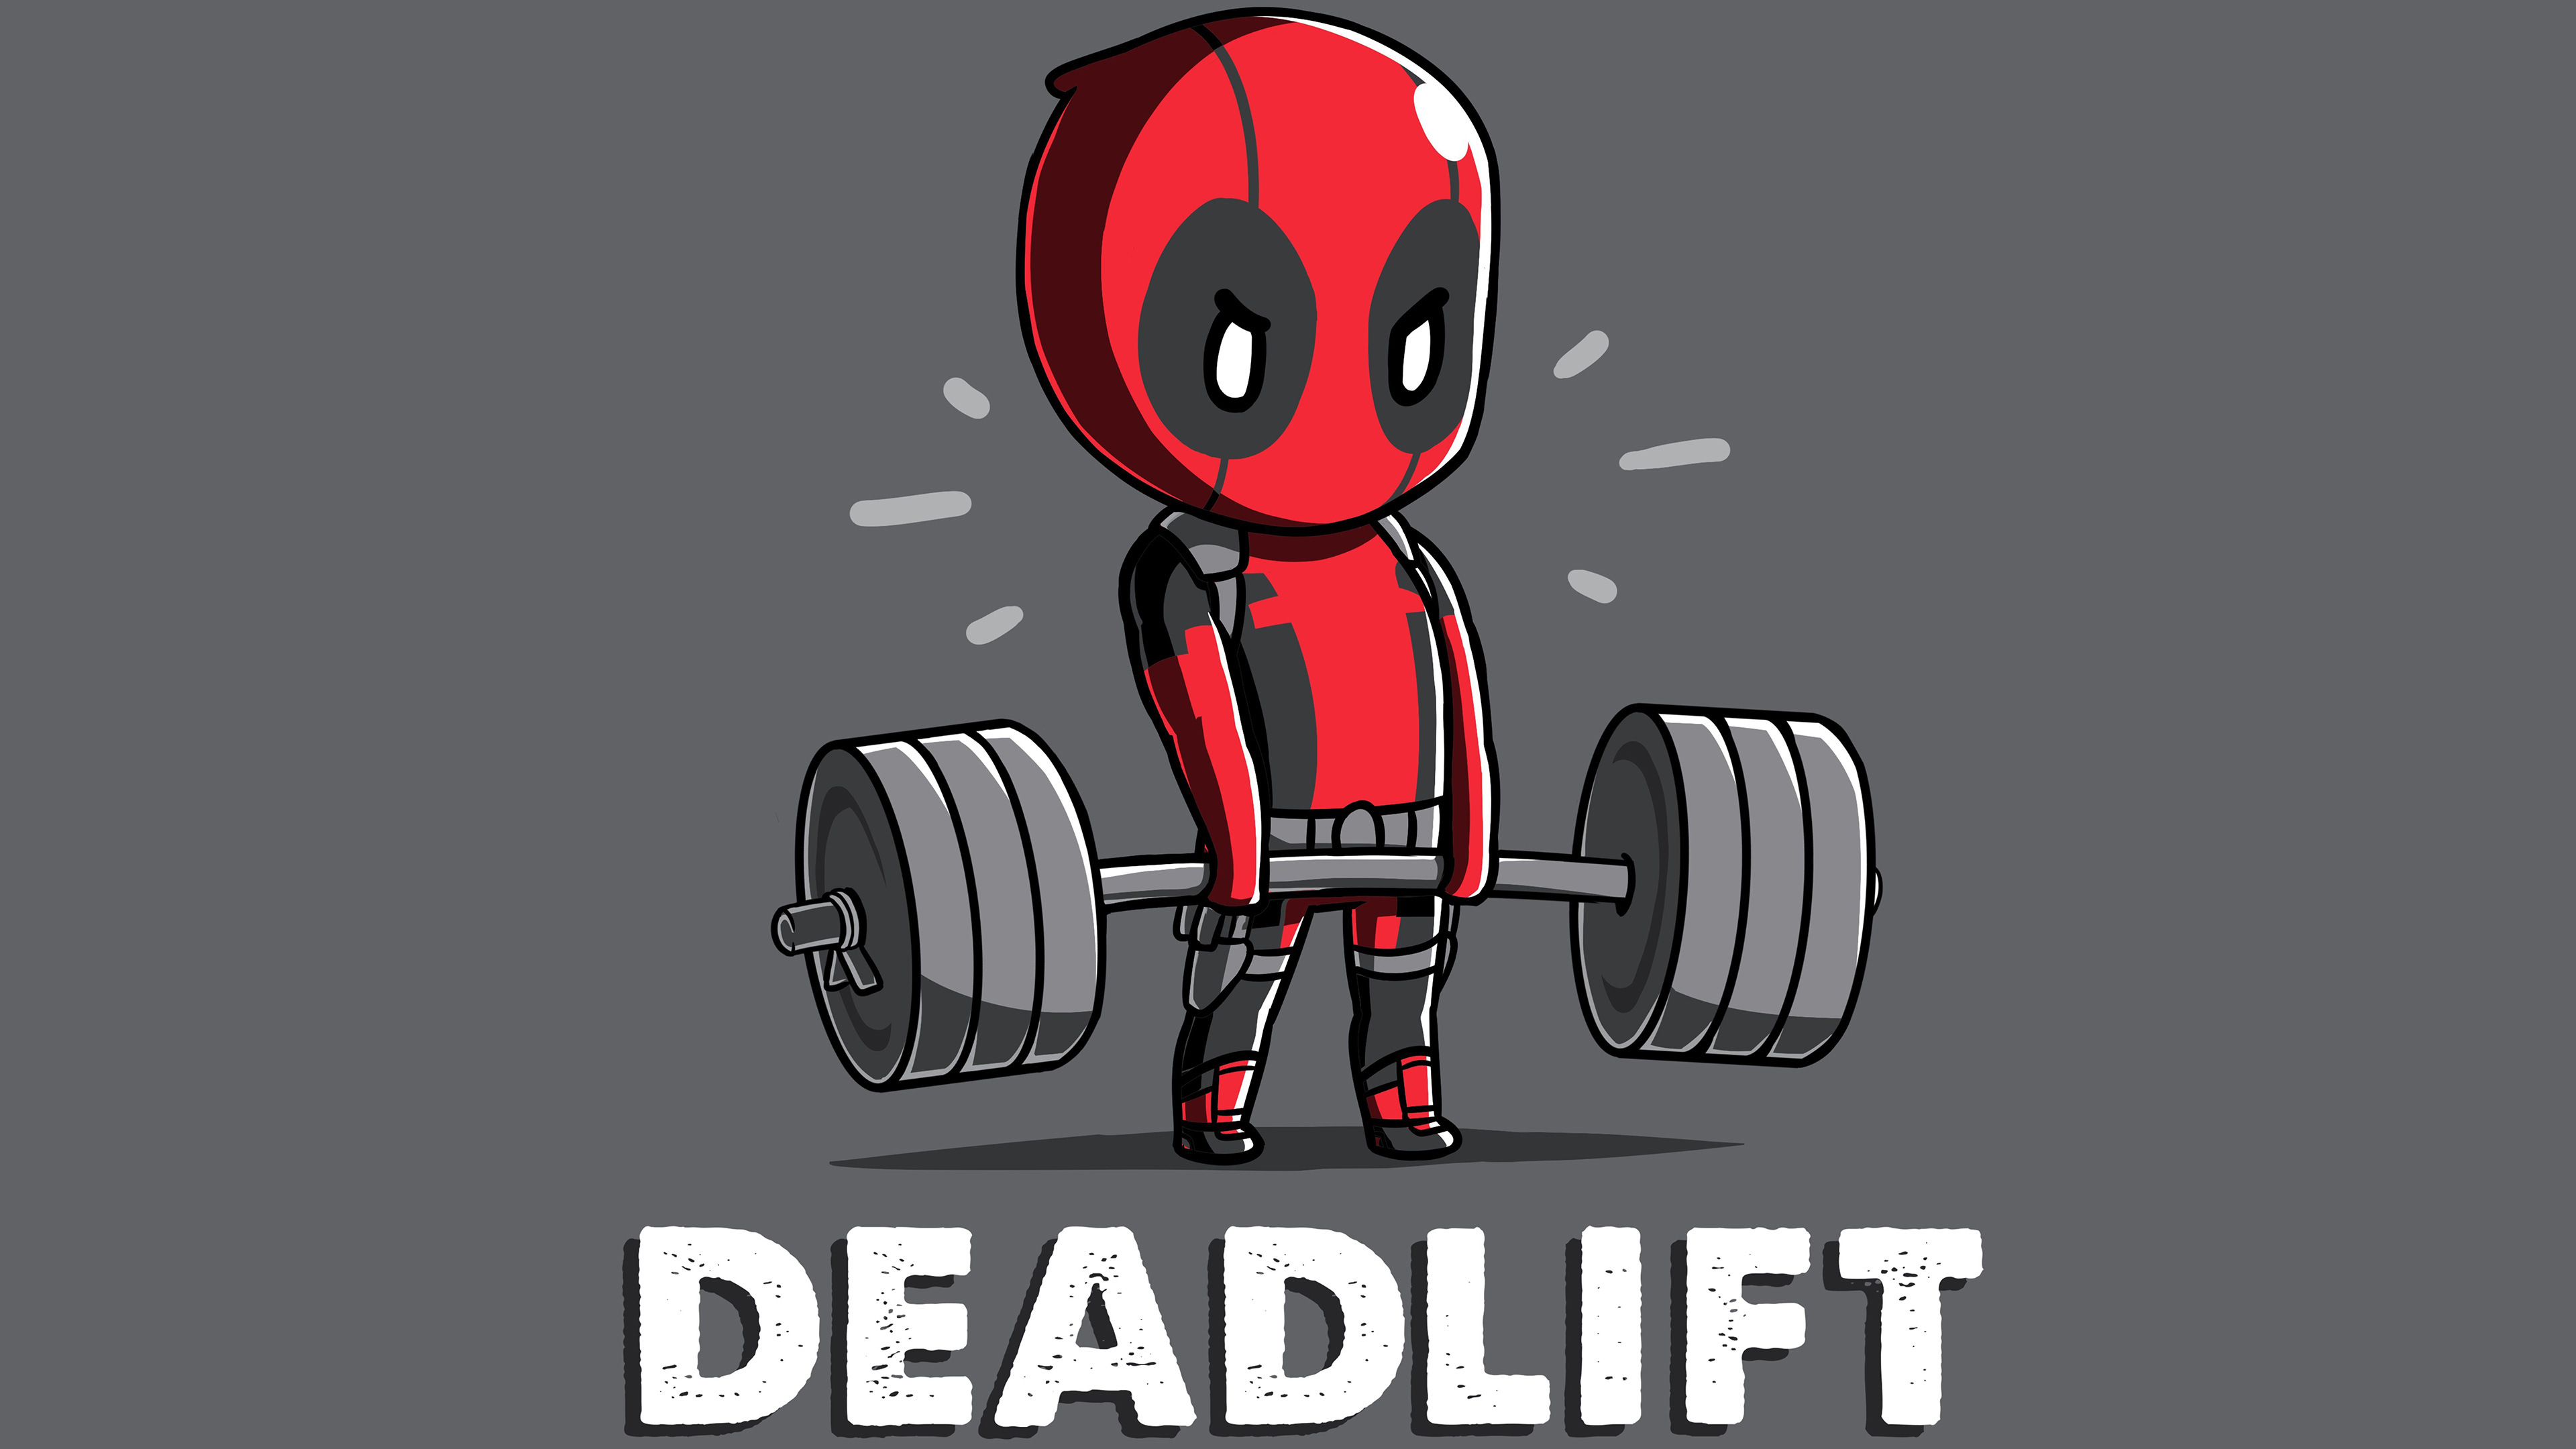 Deadpool Deadlift Funny 8k Hd Funny 4k Wallpapers Images Backgrounds Photos And Pictures